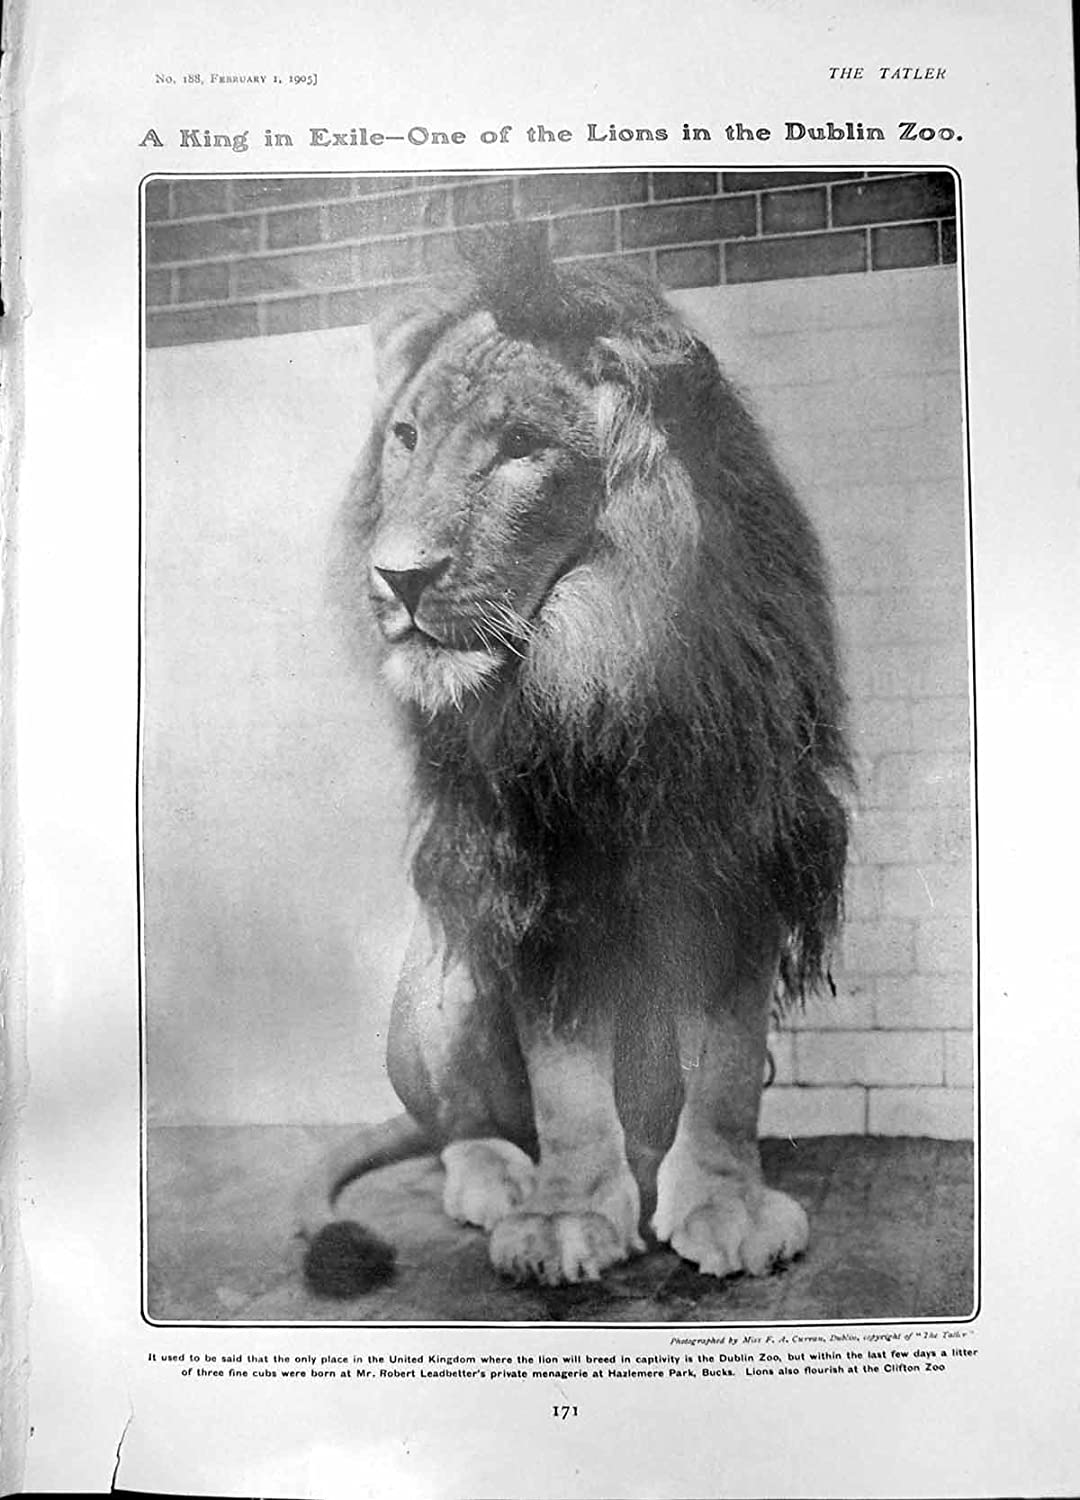 Lion Dublin Zoo New Railway Scotland Loch Earn Lays Ancient Rome1 171Q015 old-print Q0151905171